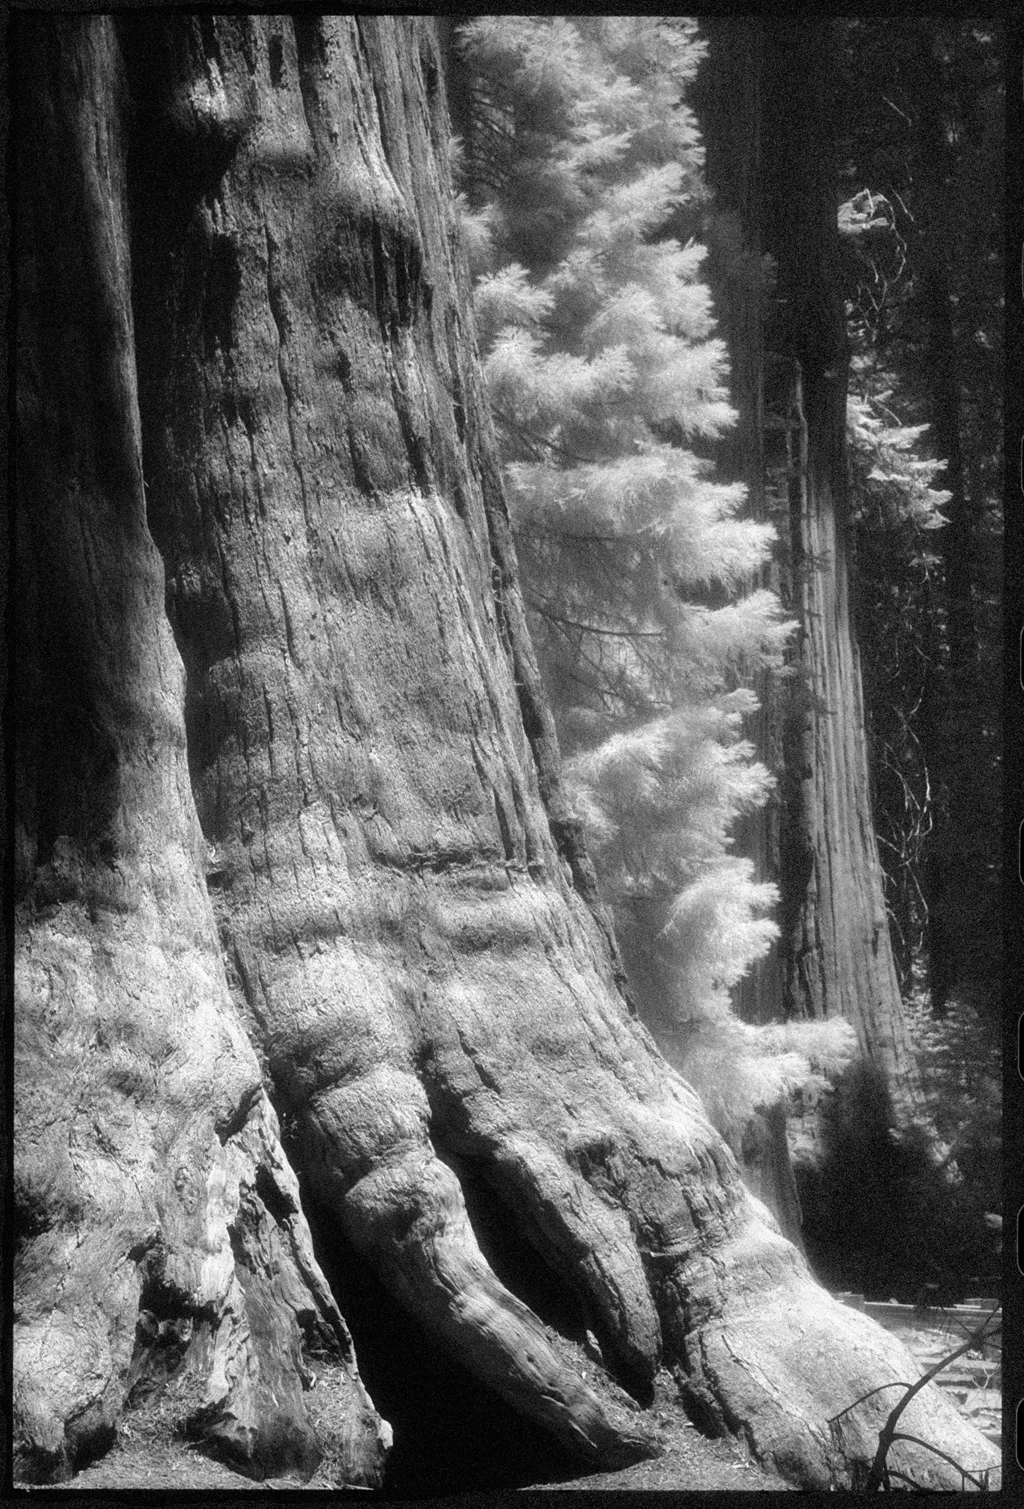 Sequoia National Forest, CA by Edward C. Alfano